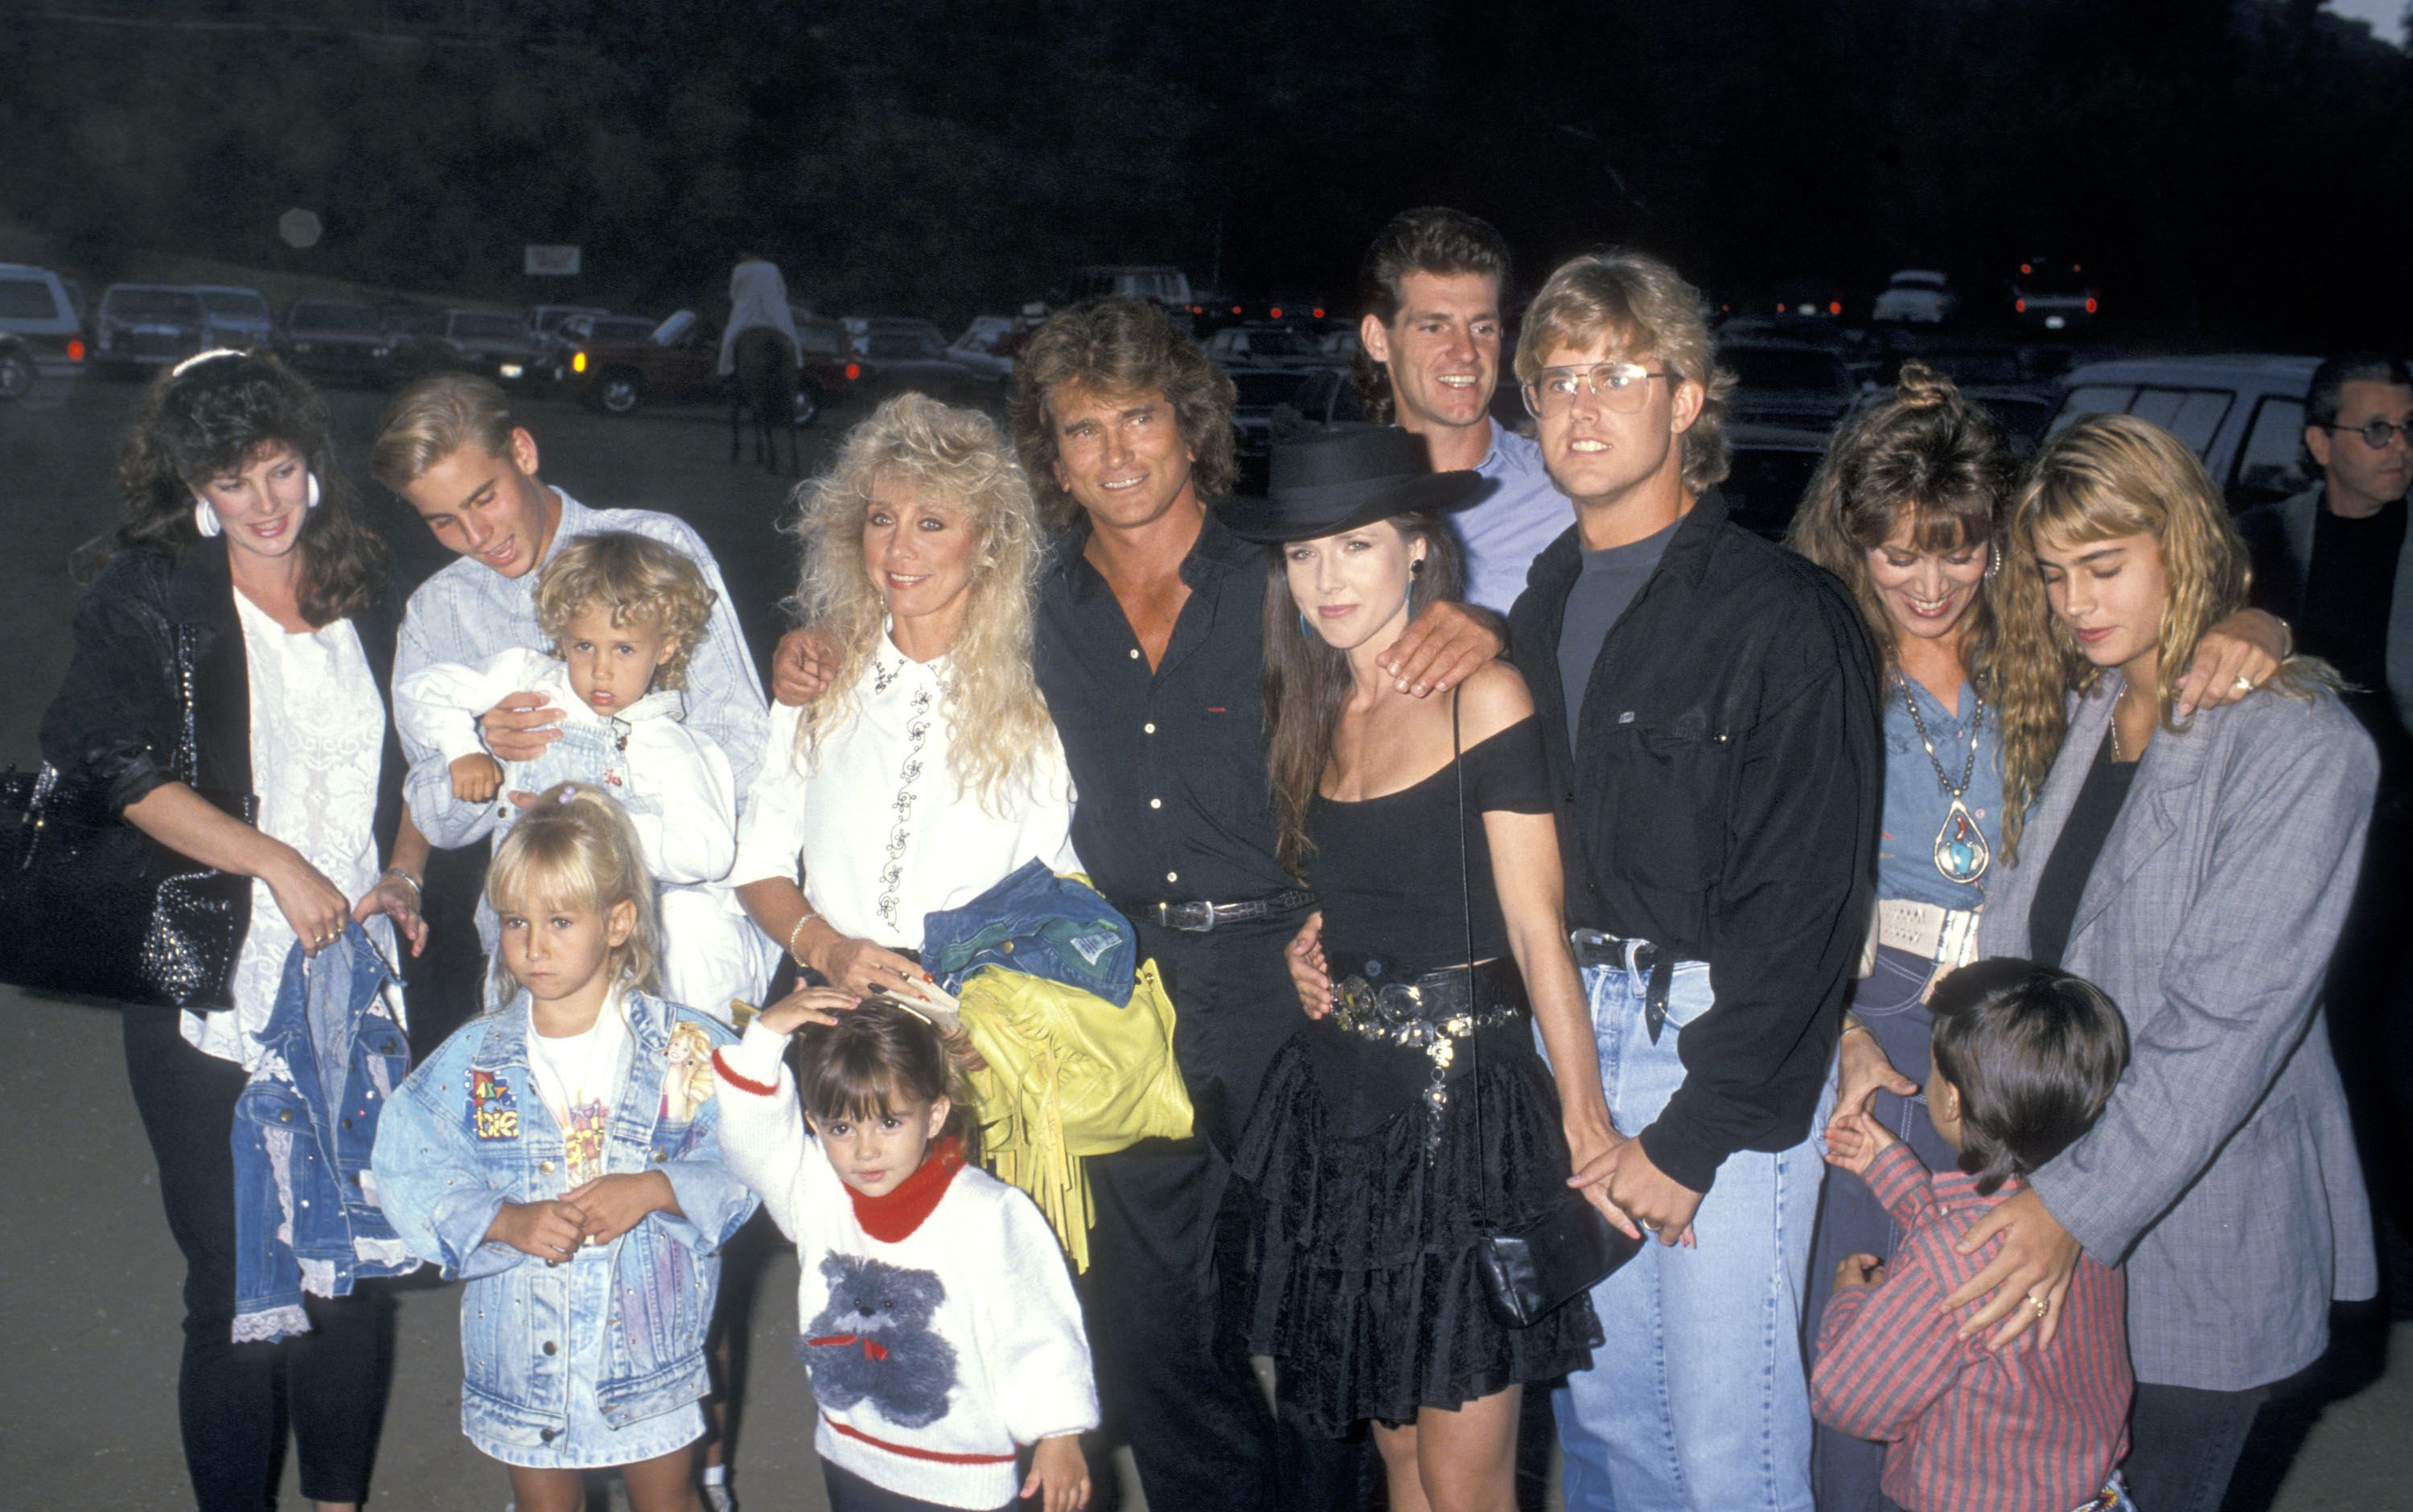 Michael Landon and his children at Third Annual Moonlight Roundup Benefiting Free Arts for Abused Children in Malibu, in 1989 | Source: Getty Images